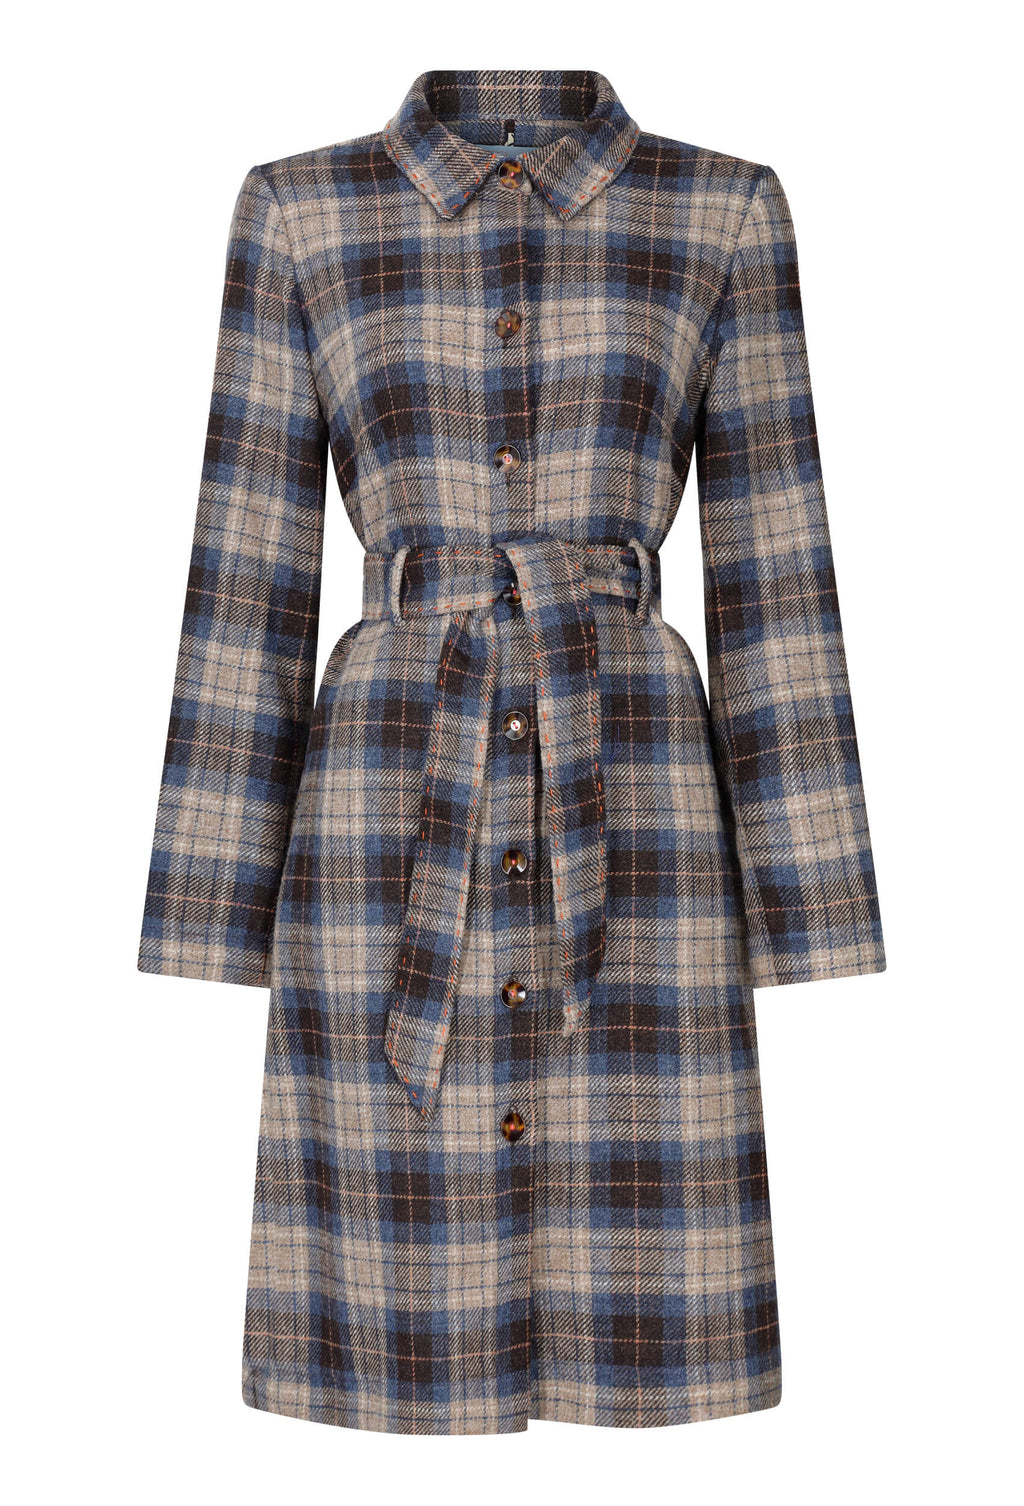 lightweight-blue-check-tweed-coat-dress